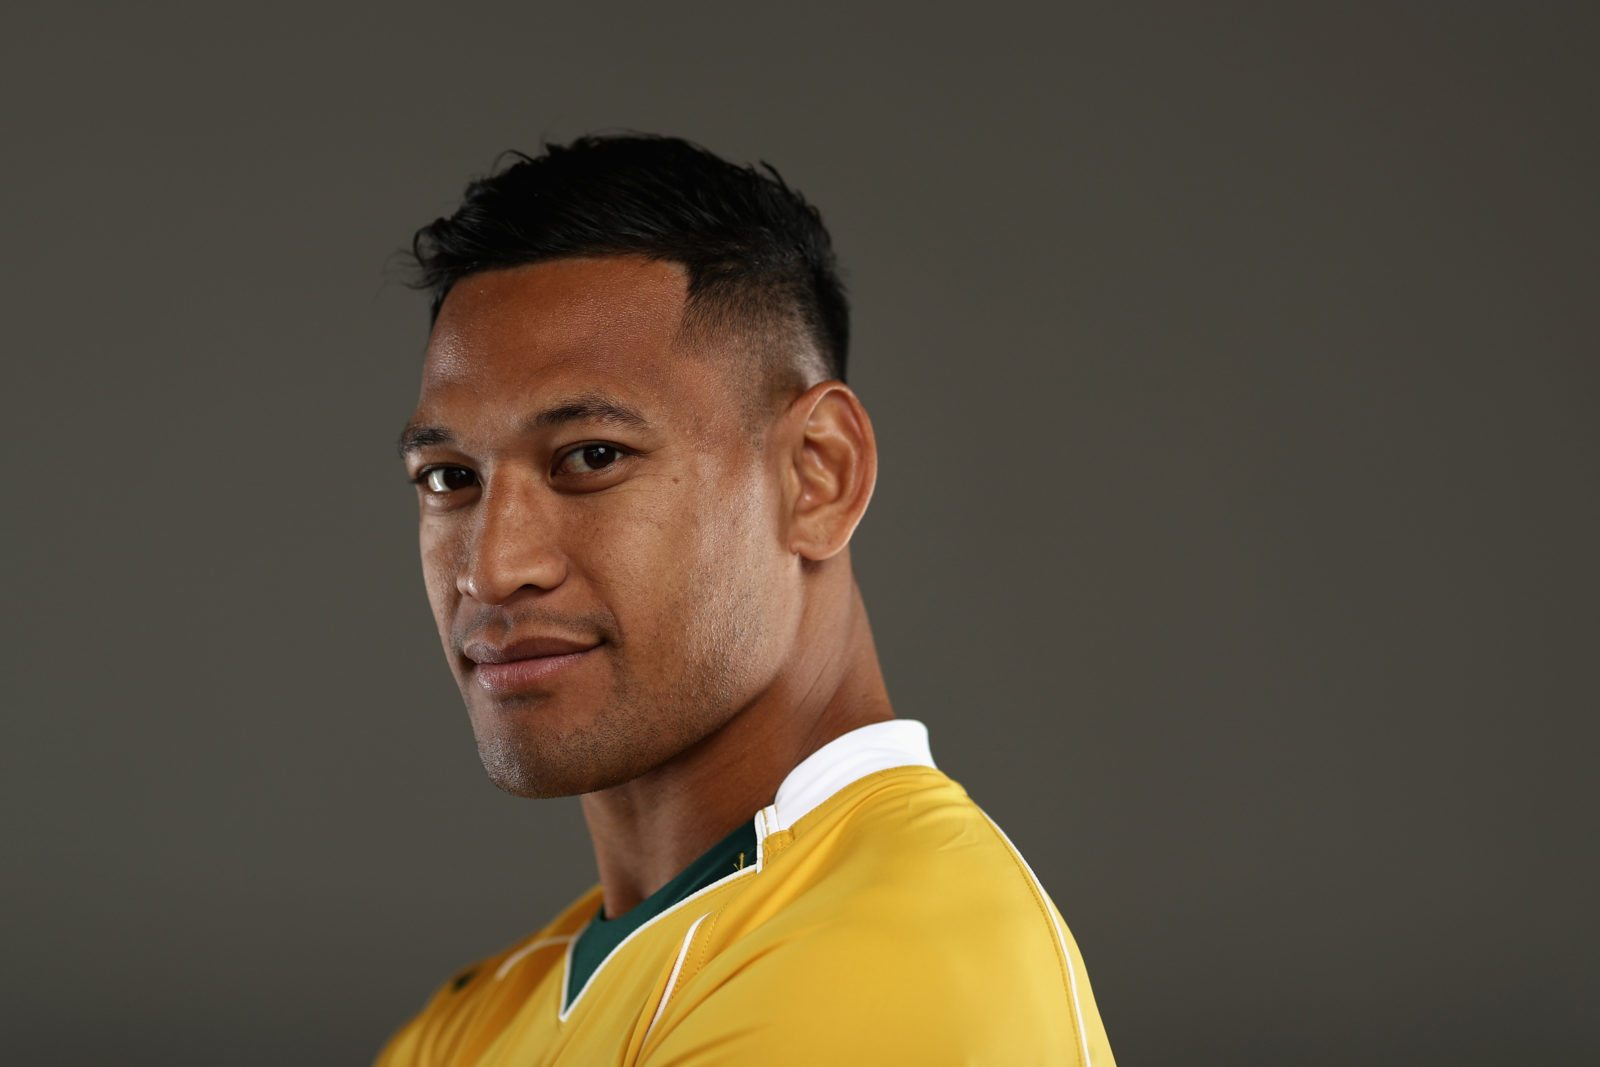 Israel Folau faces discrimination complaint after blaming gays for bushfires